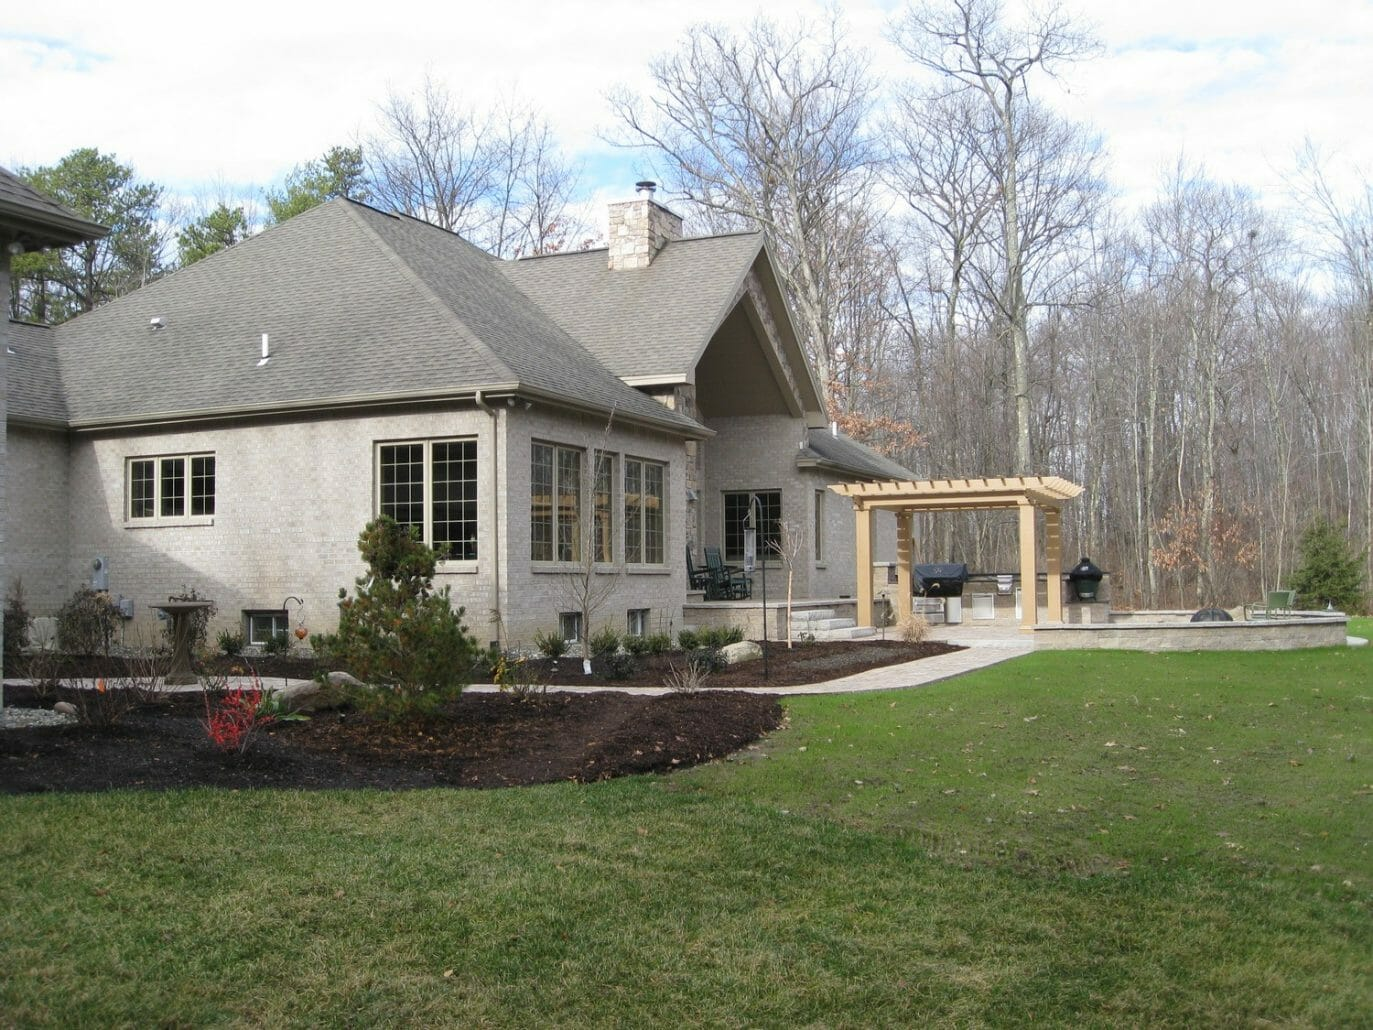 Wynantskill NY backyard landscape patio design 1373x1030 - Landscape Plan Installation and Project Management